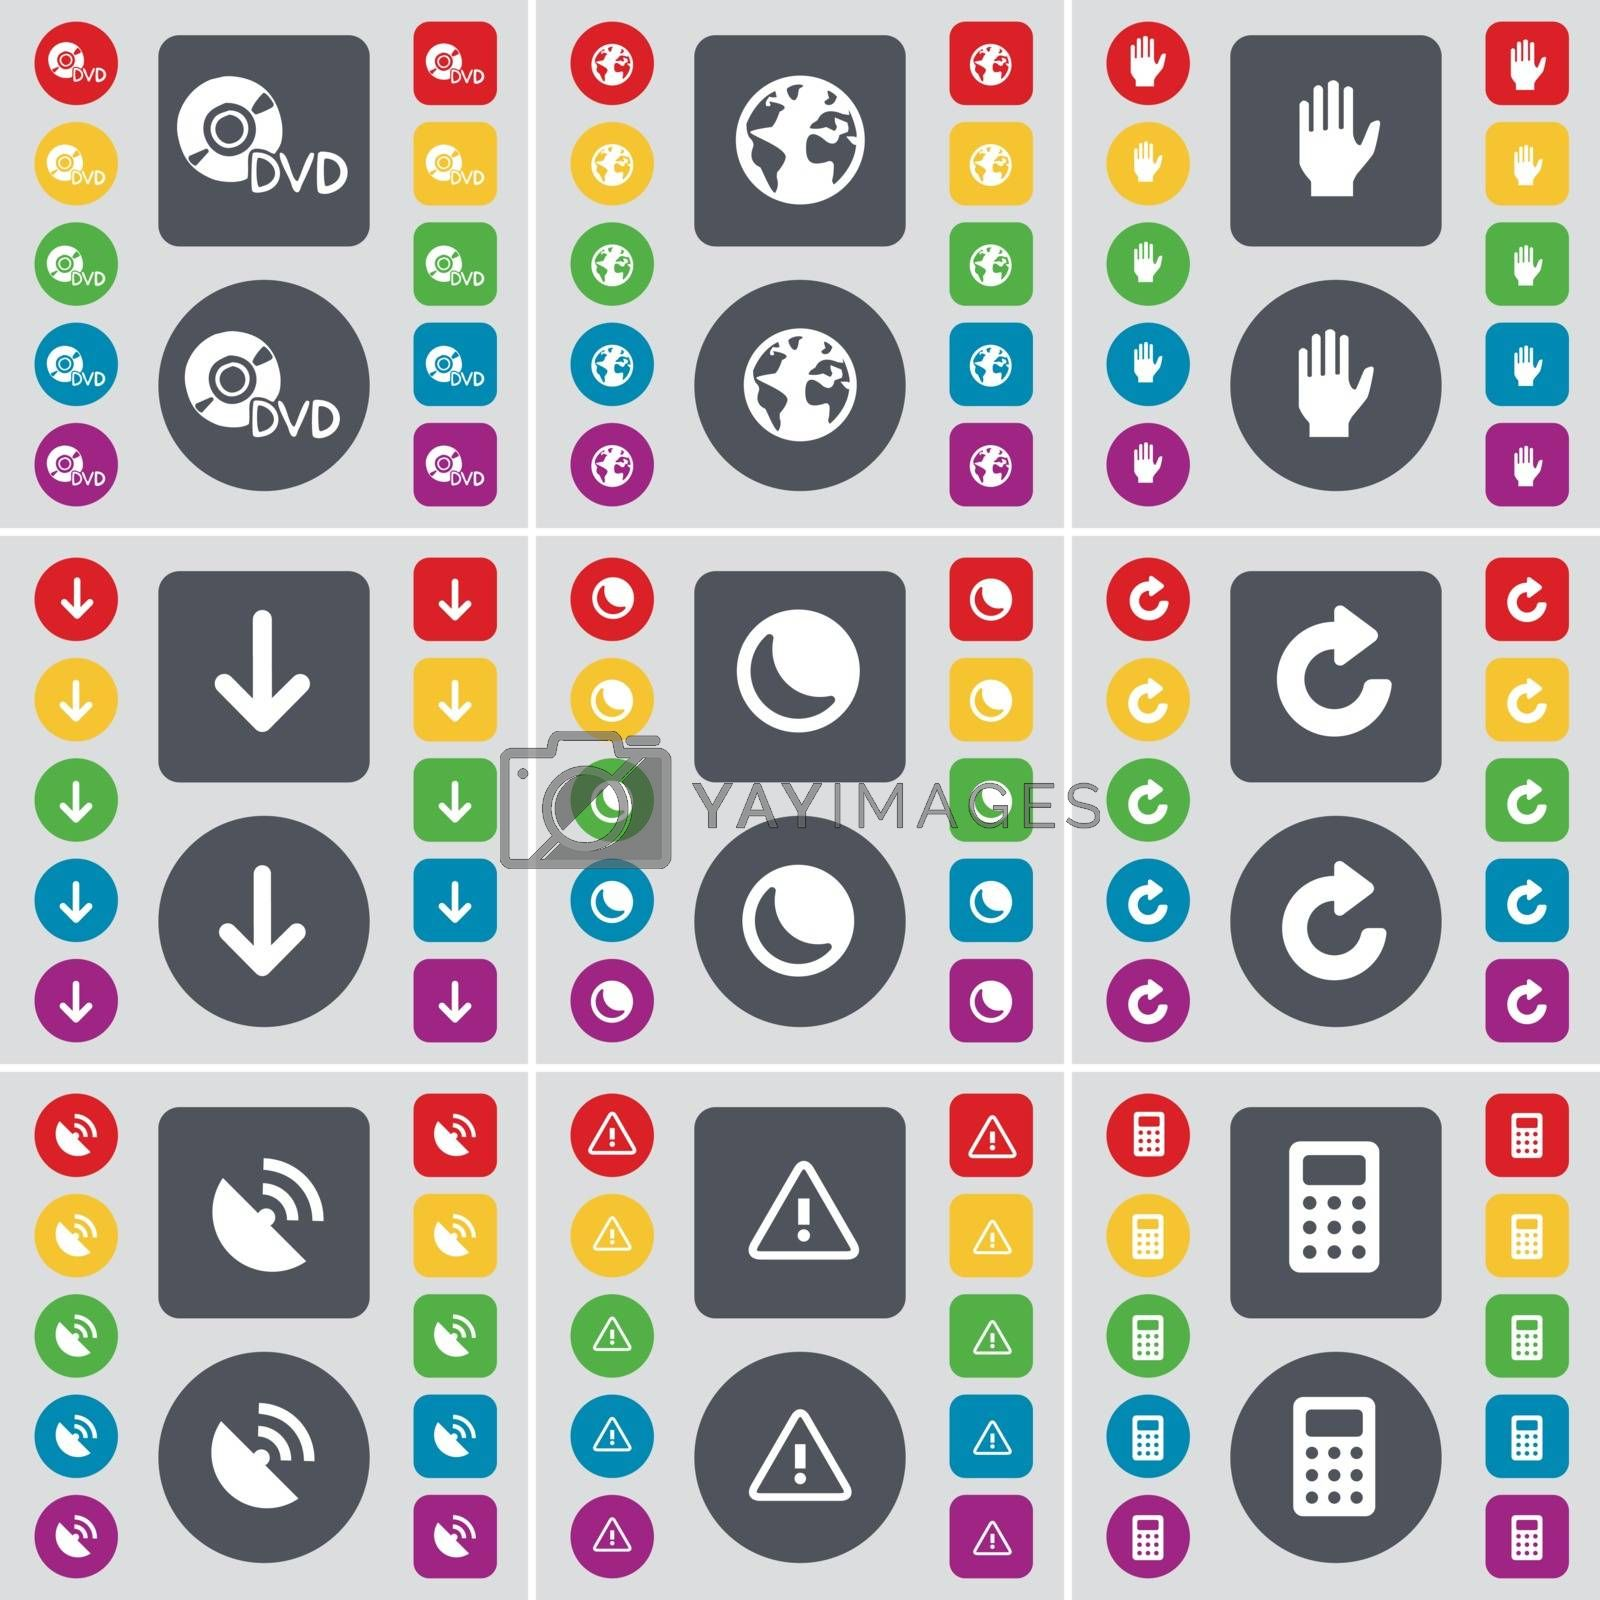 Royalty free image of DVD, Planet, Hand, Arrow down, Moon, Reload, Satellite dish, Warning, Calculator icon symbol. A large set of flat, colored buttons for your design. Vector by serhii_lohvyniuk